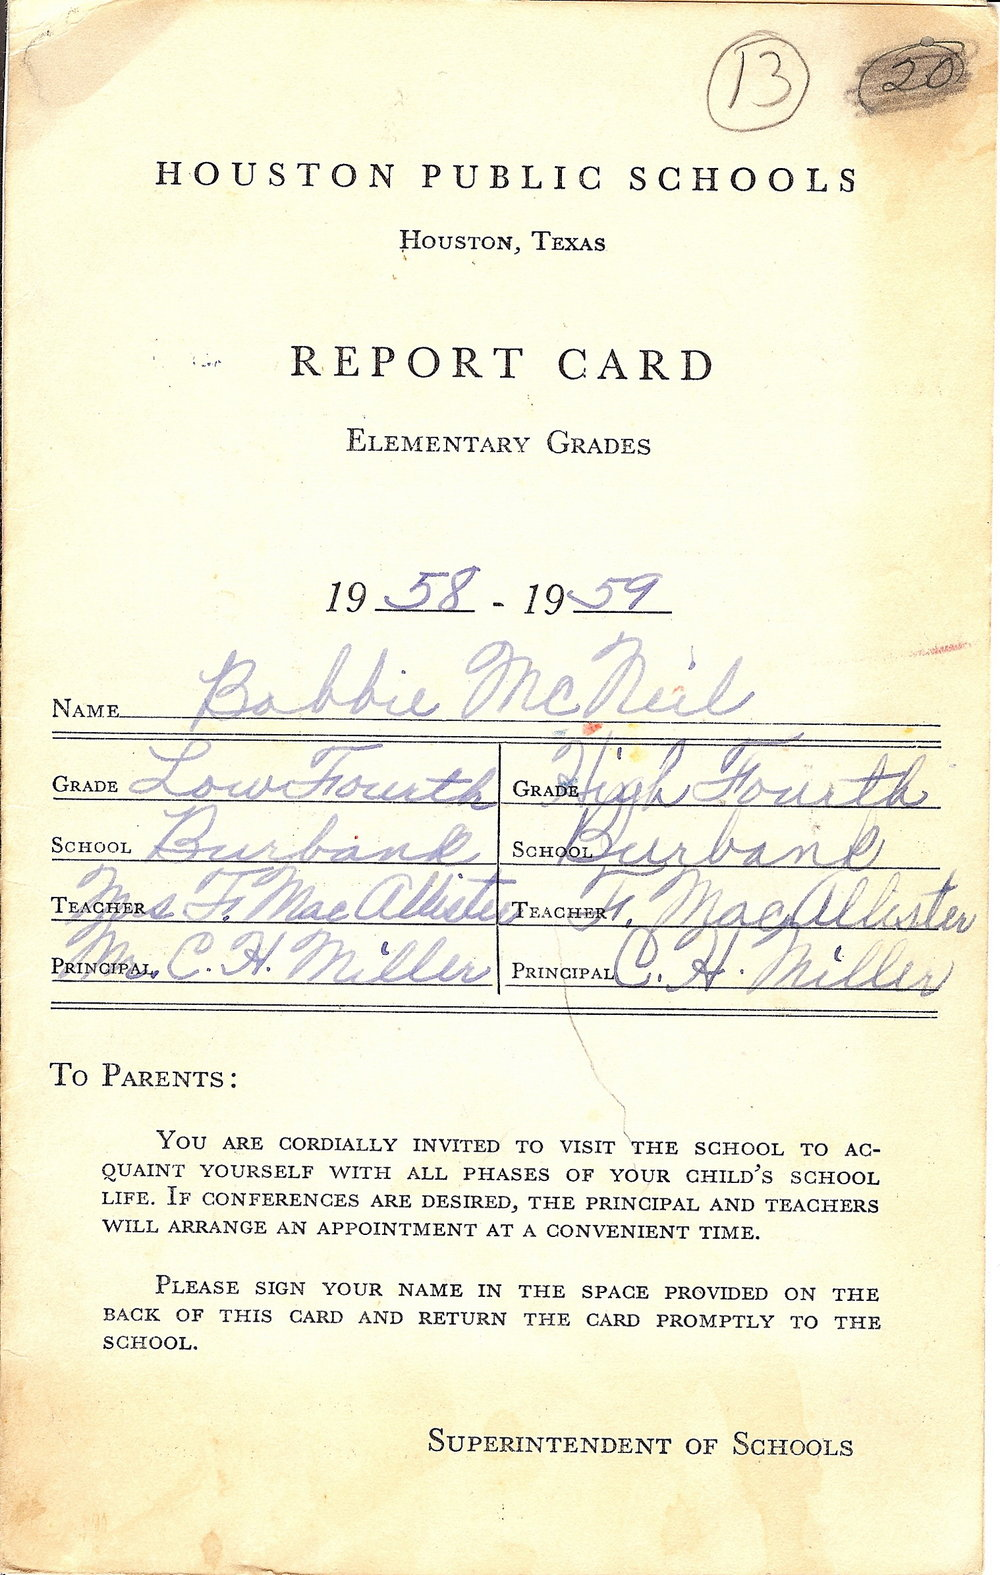 Bob McNeil - 1958 - Age 9 - Fourth Grade Report Card - page 1